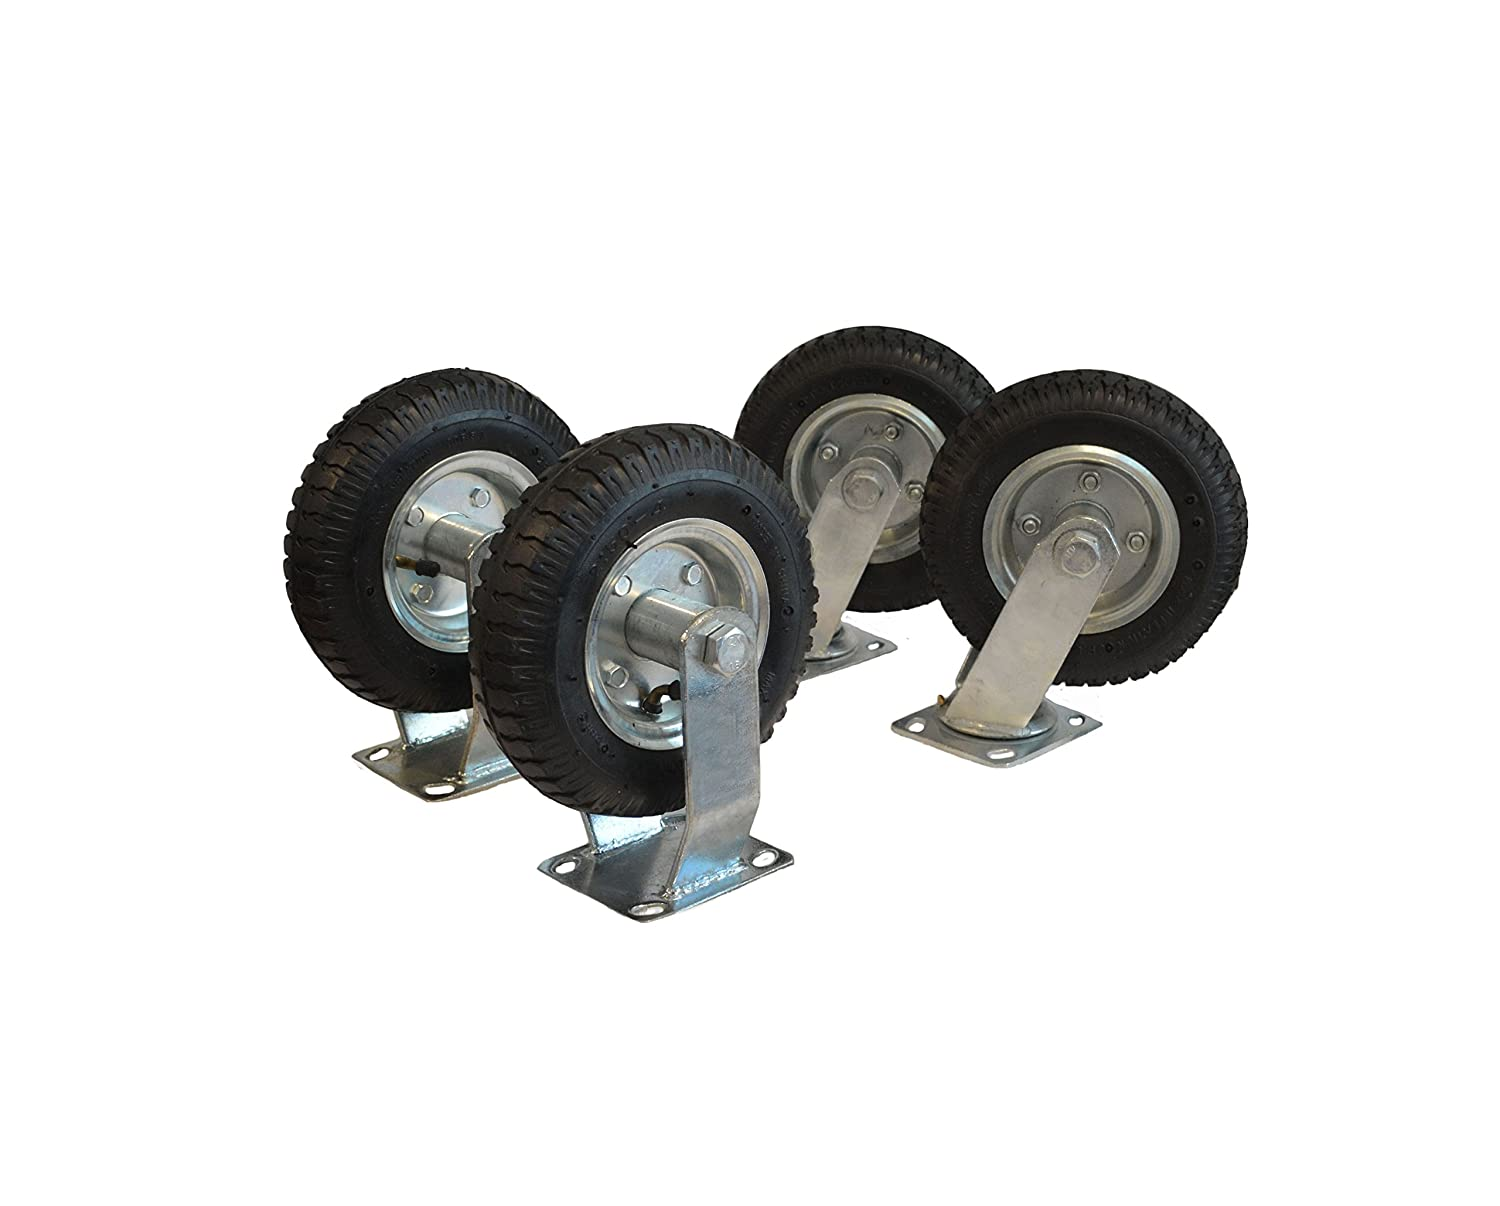 4-Pack of 8' Large Air Casters (2 Swivel and 2 Fixed) EZ Travel Distribution